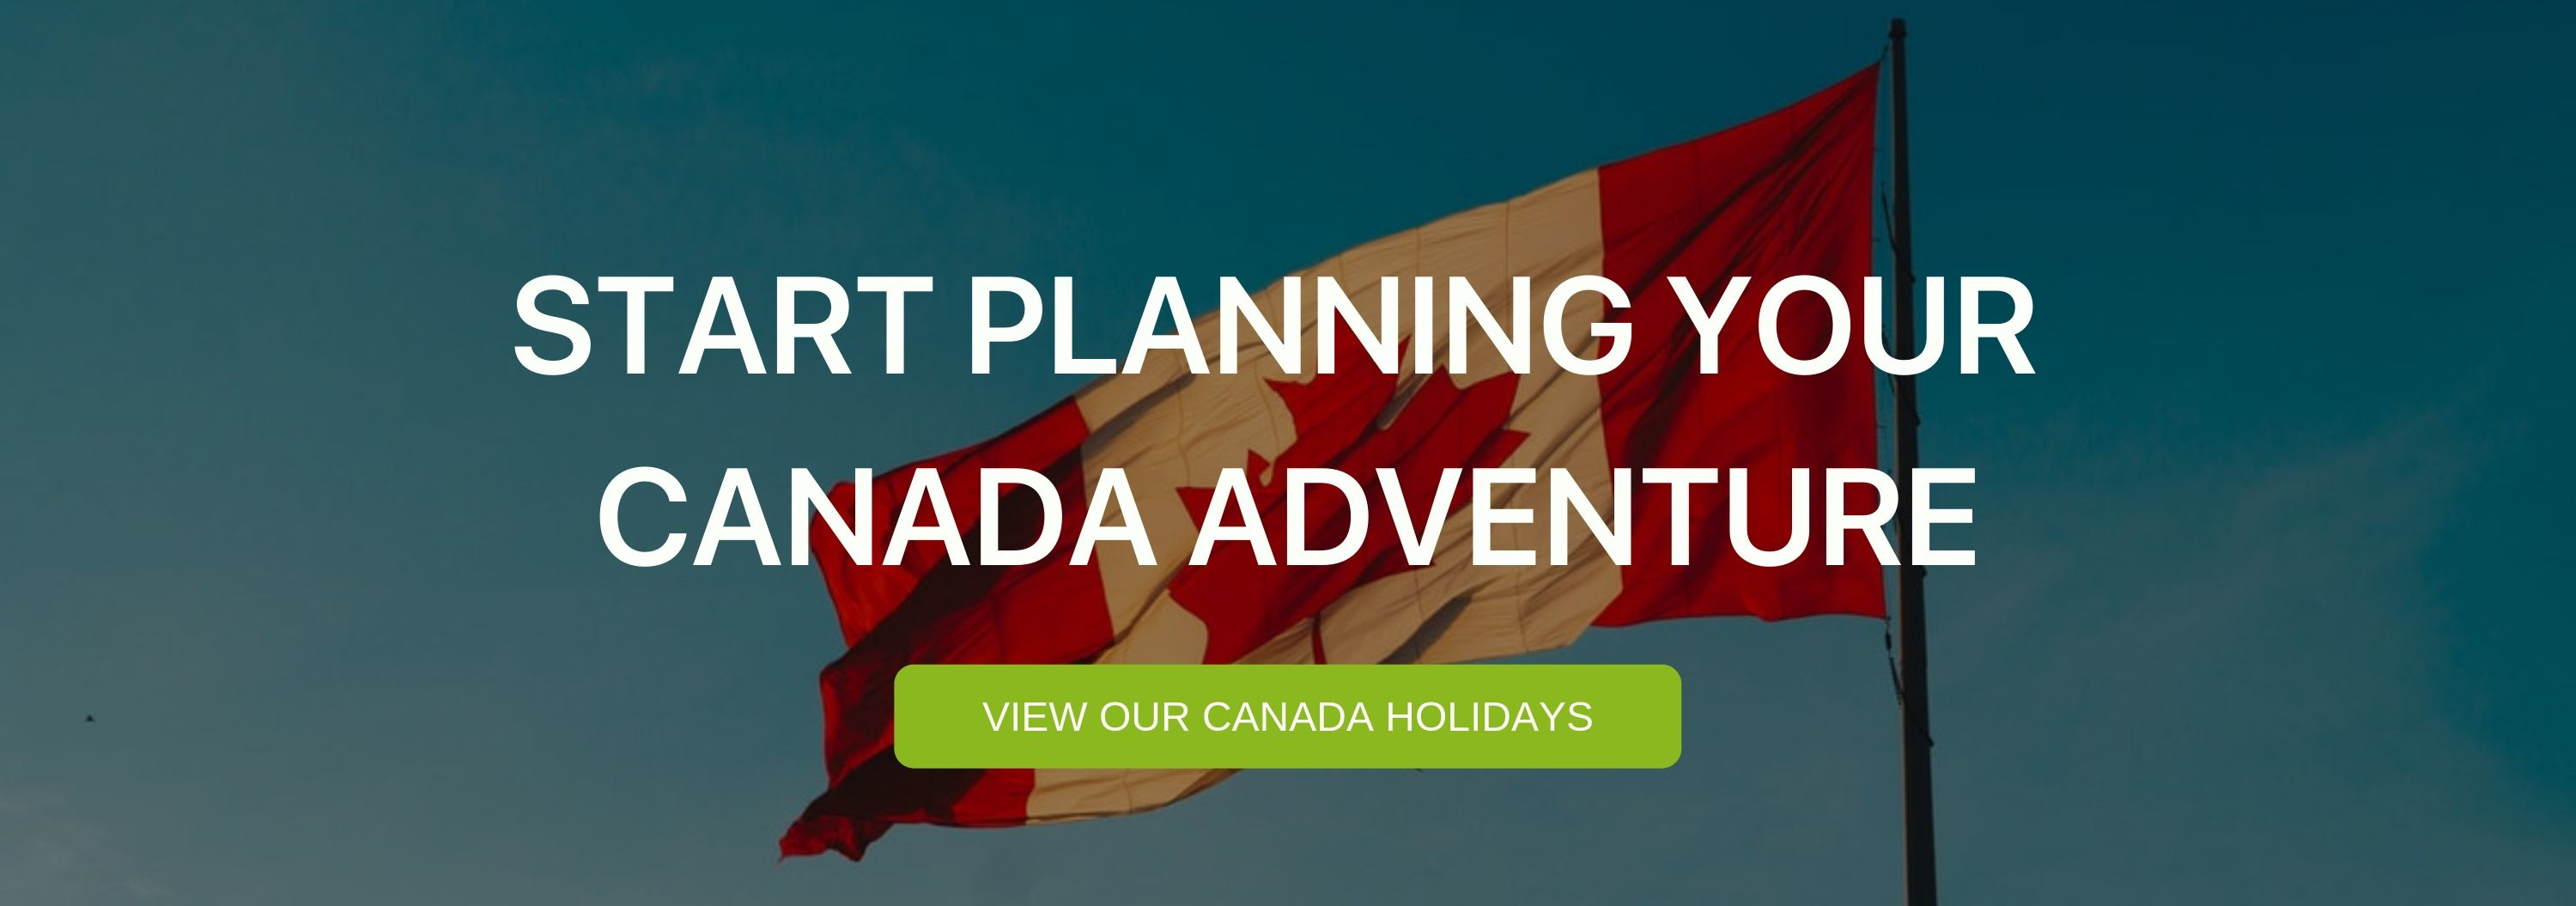 "A banner that says ""Start planning your Canada adventure"""